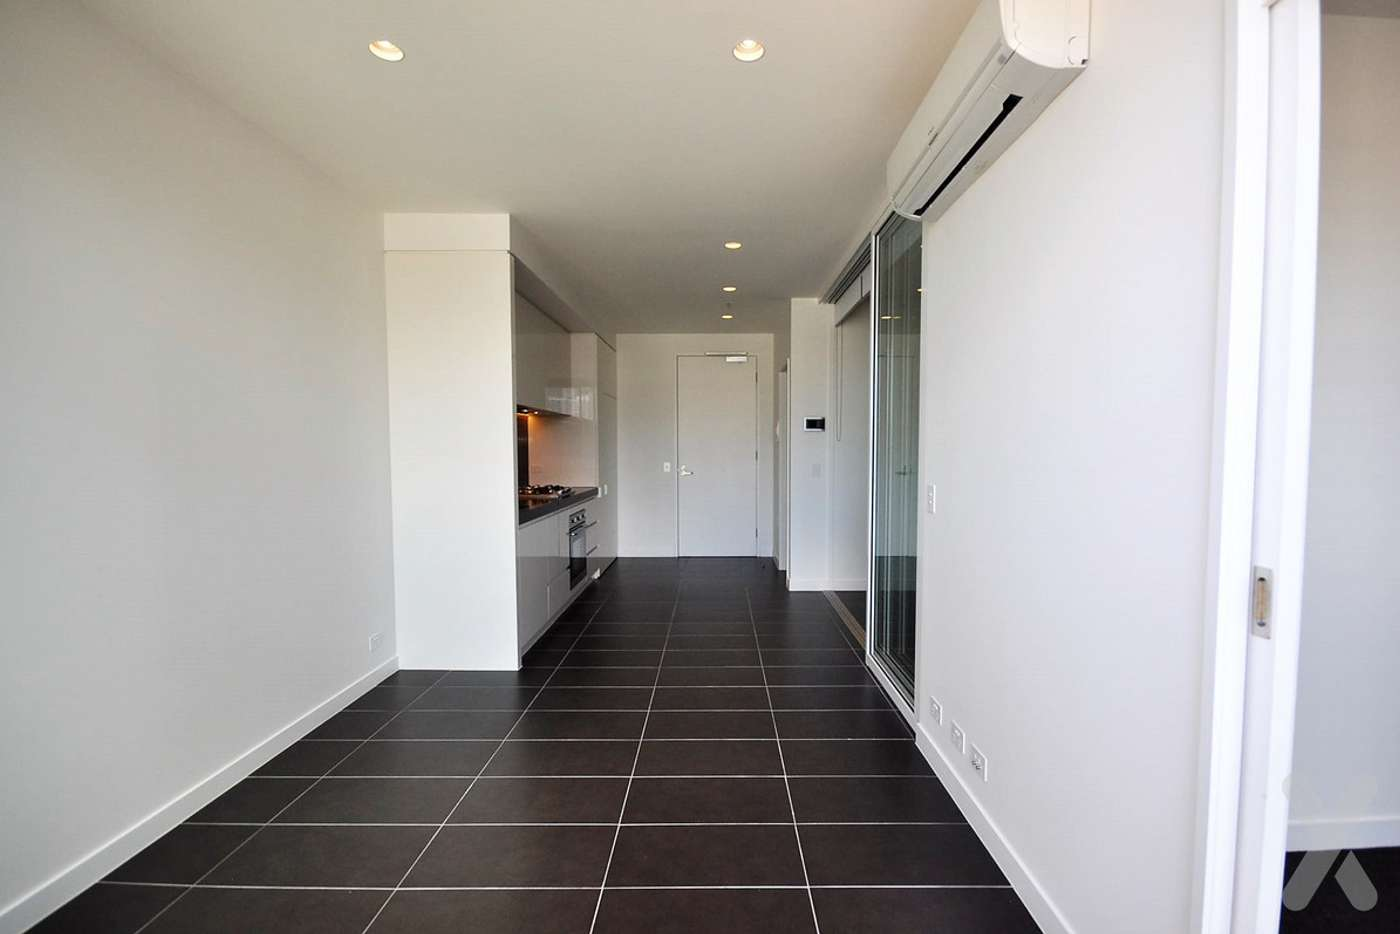 Sixth view of Homely apartment listing, 308/145 Roden Street, West Melbourne VIC 3003